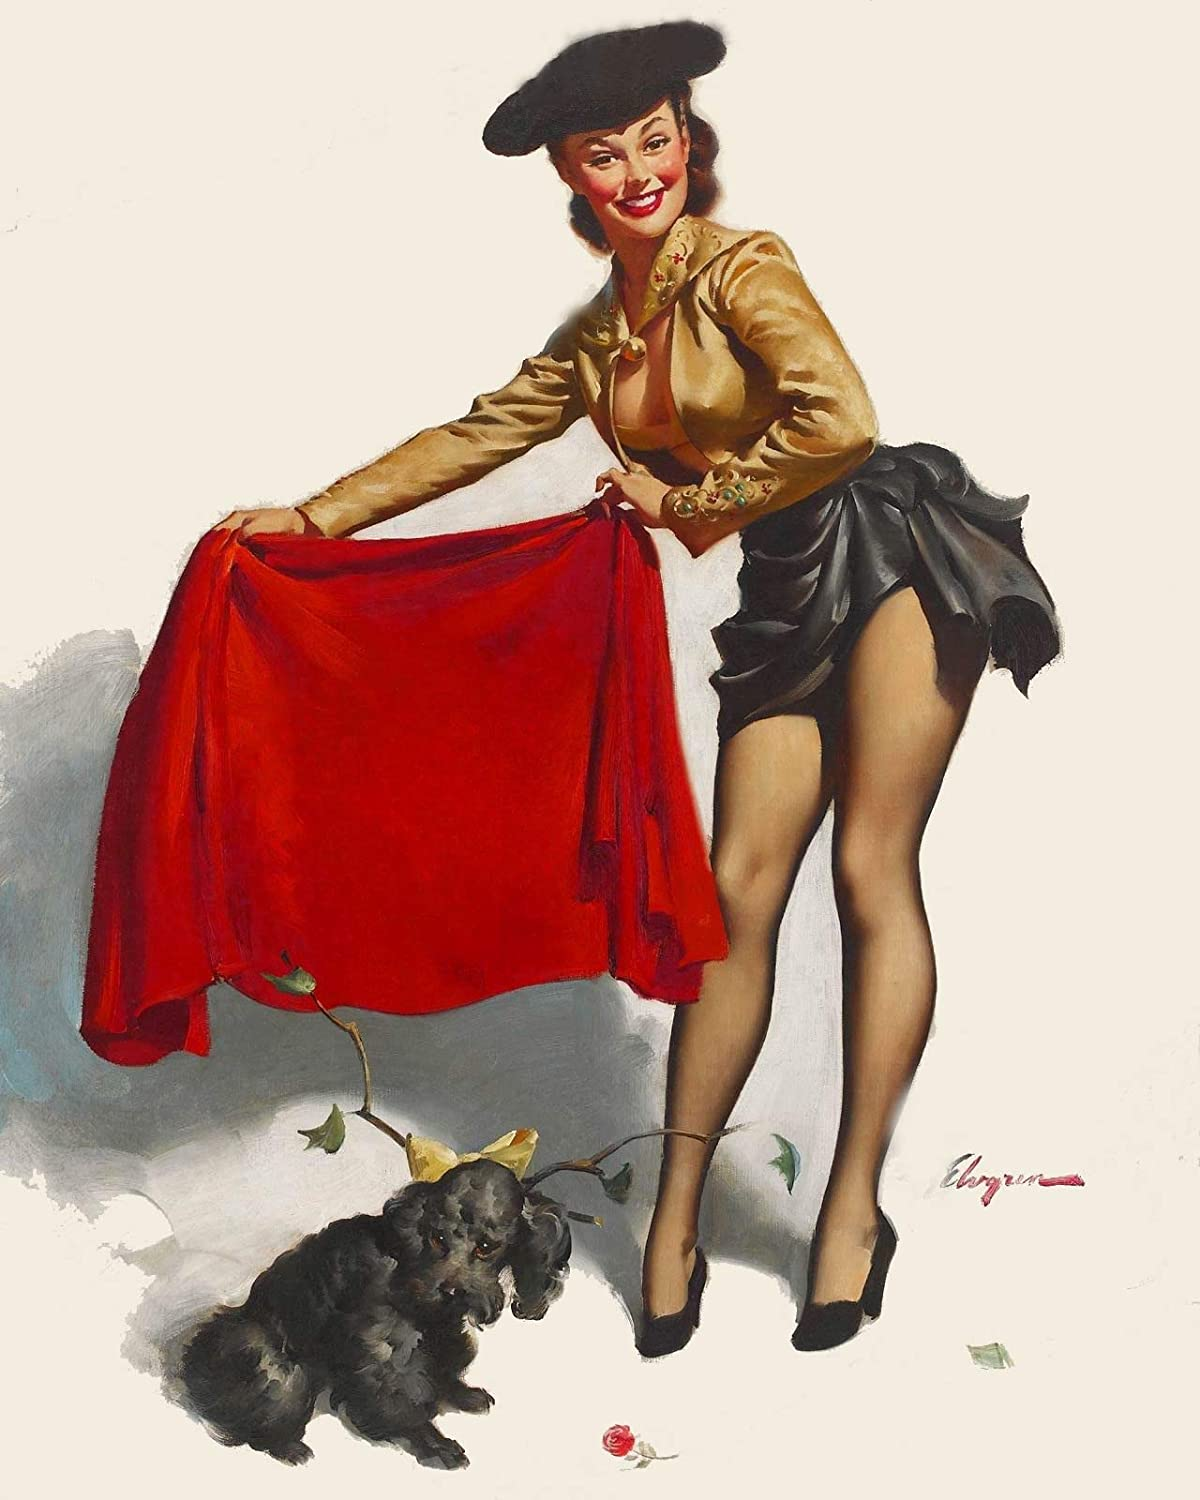 Magnet Aw-Come One 1953 Elvgren Pin-Up Girl Bull Fighter Magnet Vinyl Magnetic Sheet for Lockers, Cars, Signs, Refrigerator 5